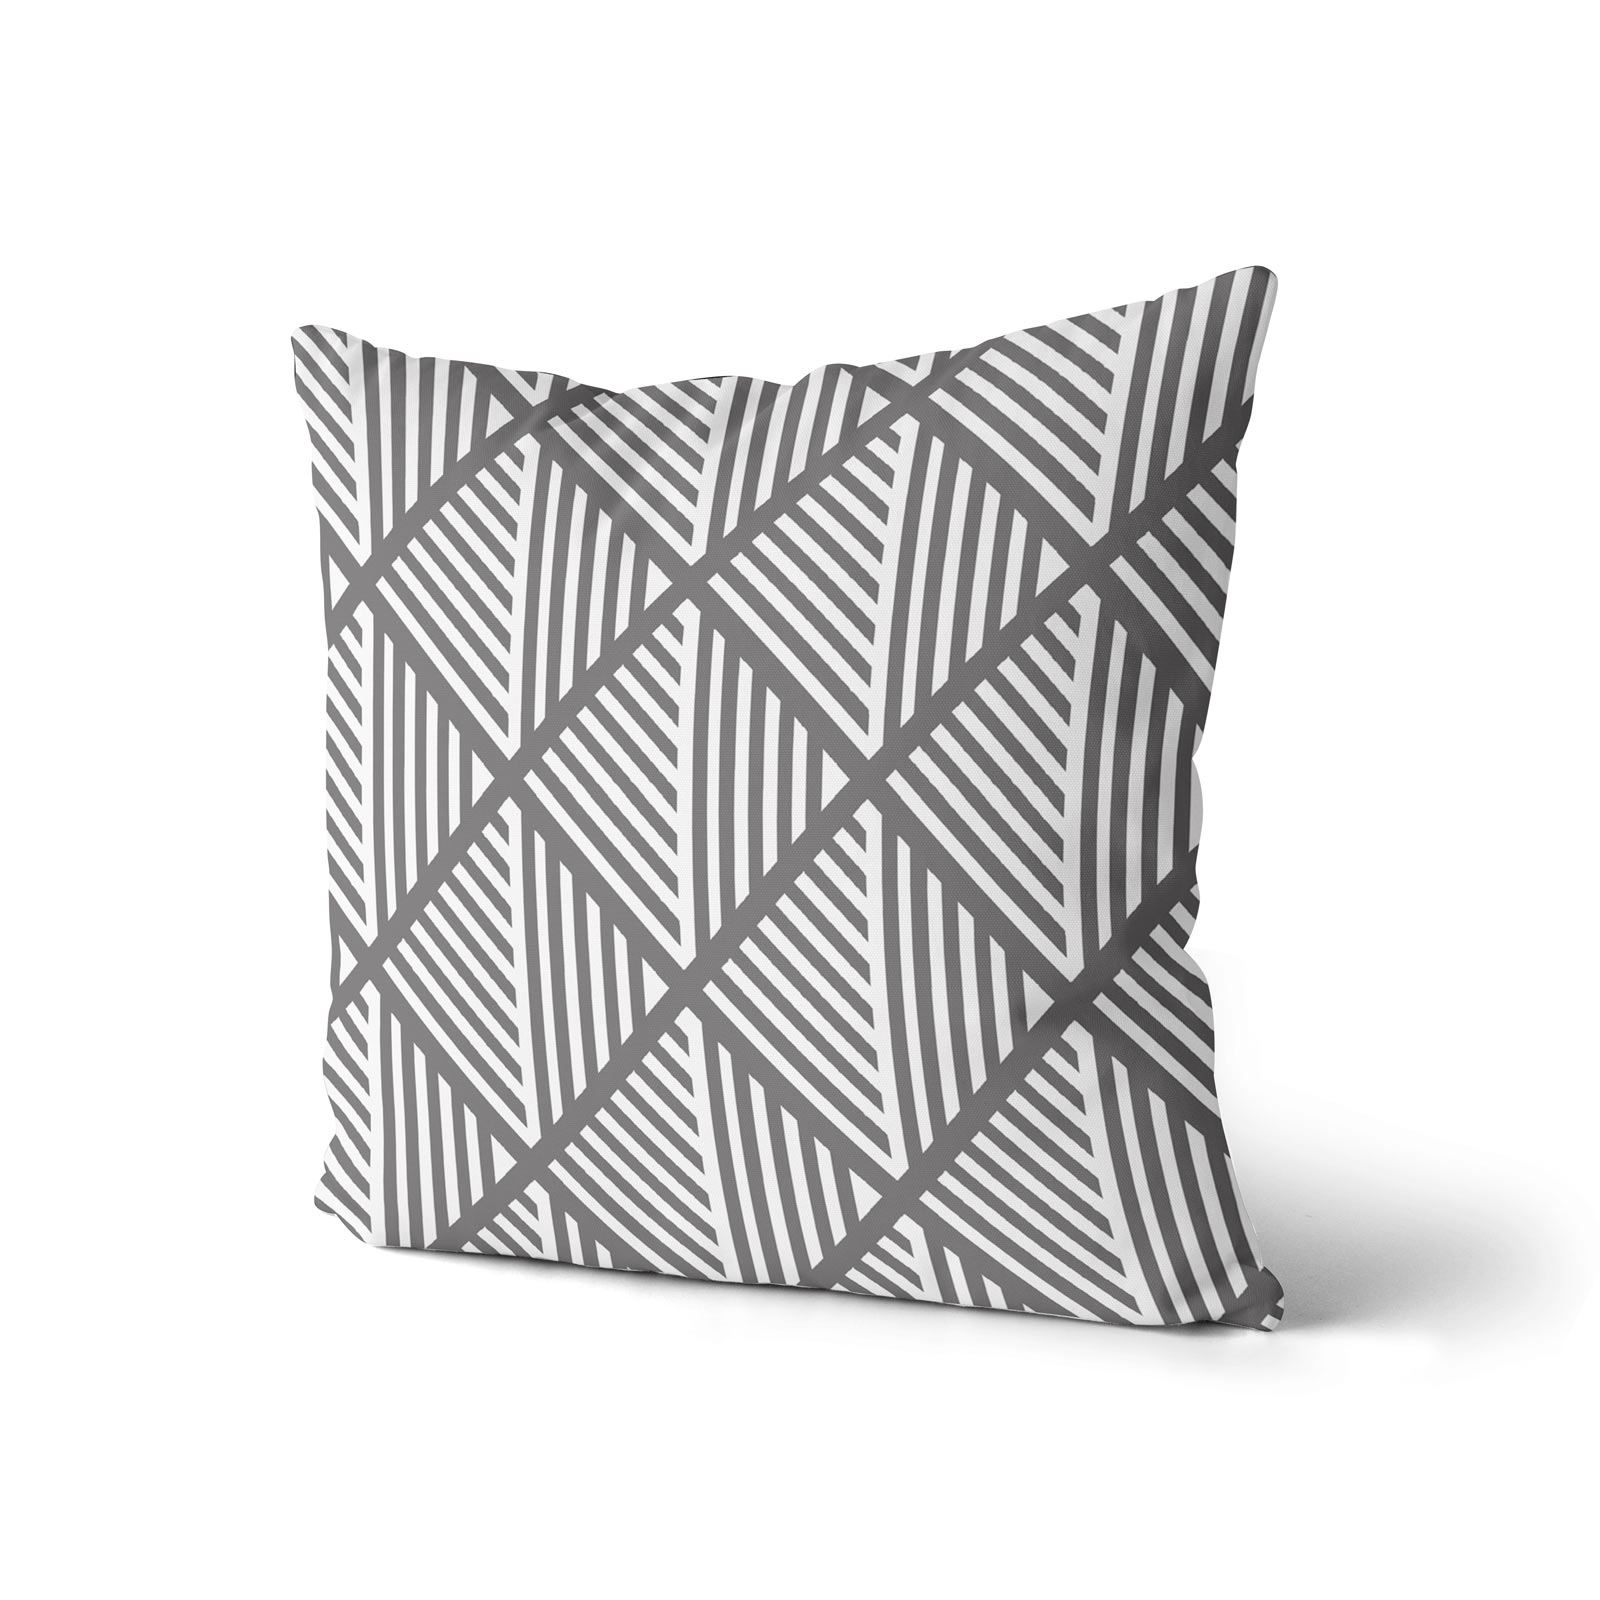 Grey-Ochre-Mustard-Cushion-Cover-Collection-17-034-18-034-Covers-Filled-Cushions thumbnail 35